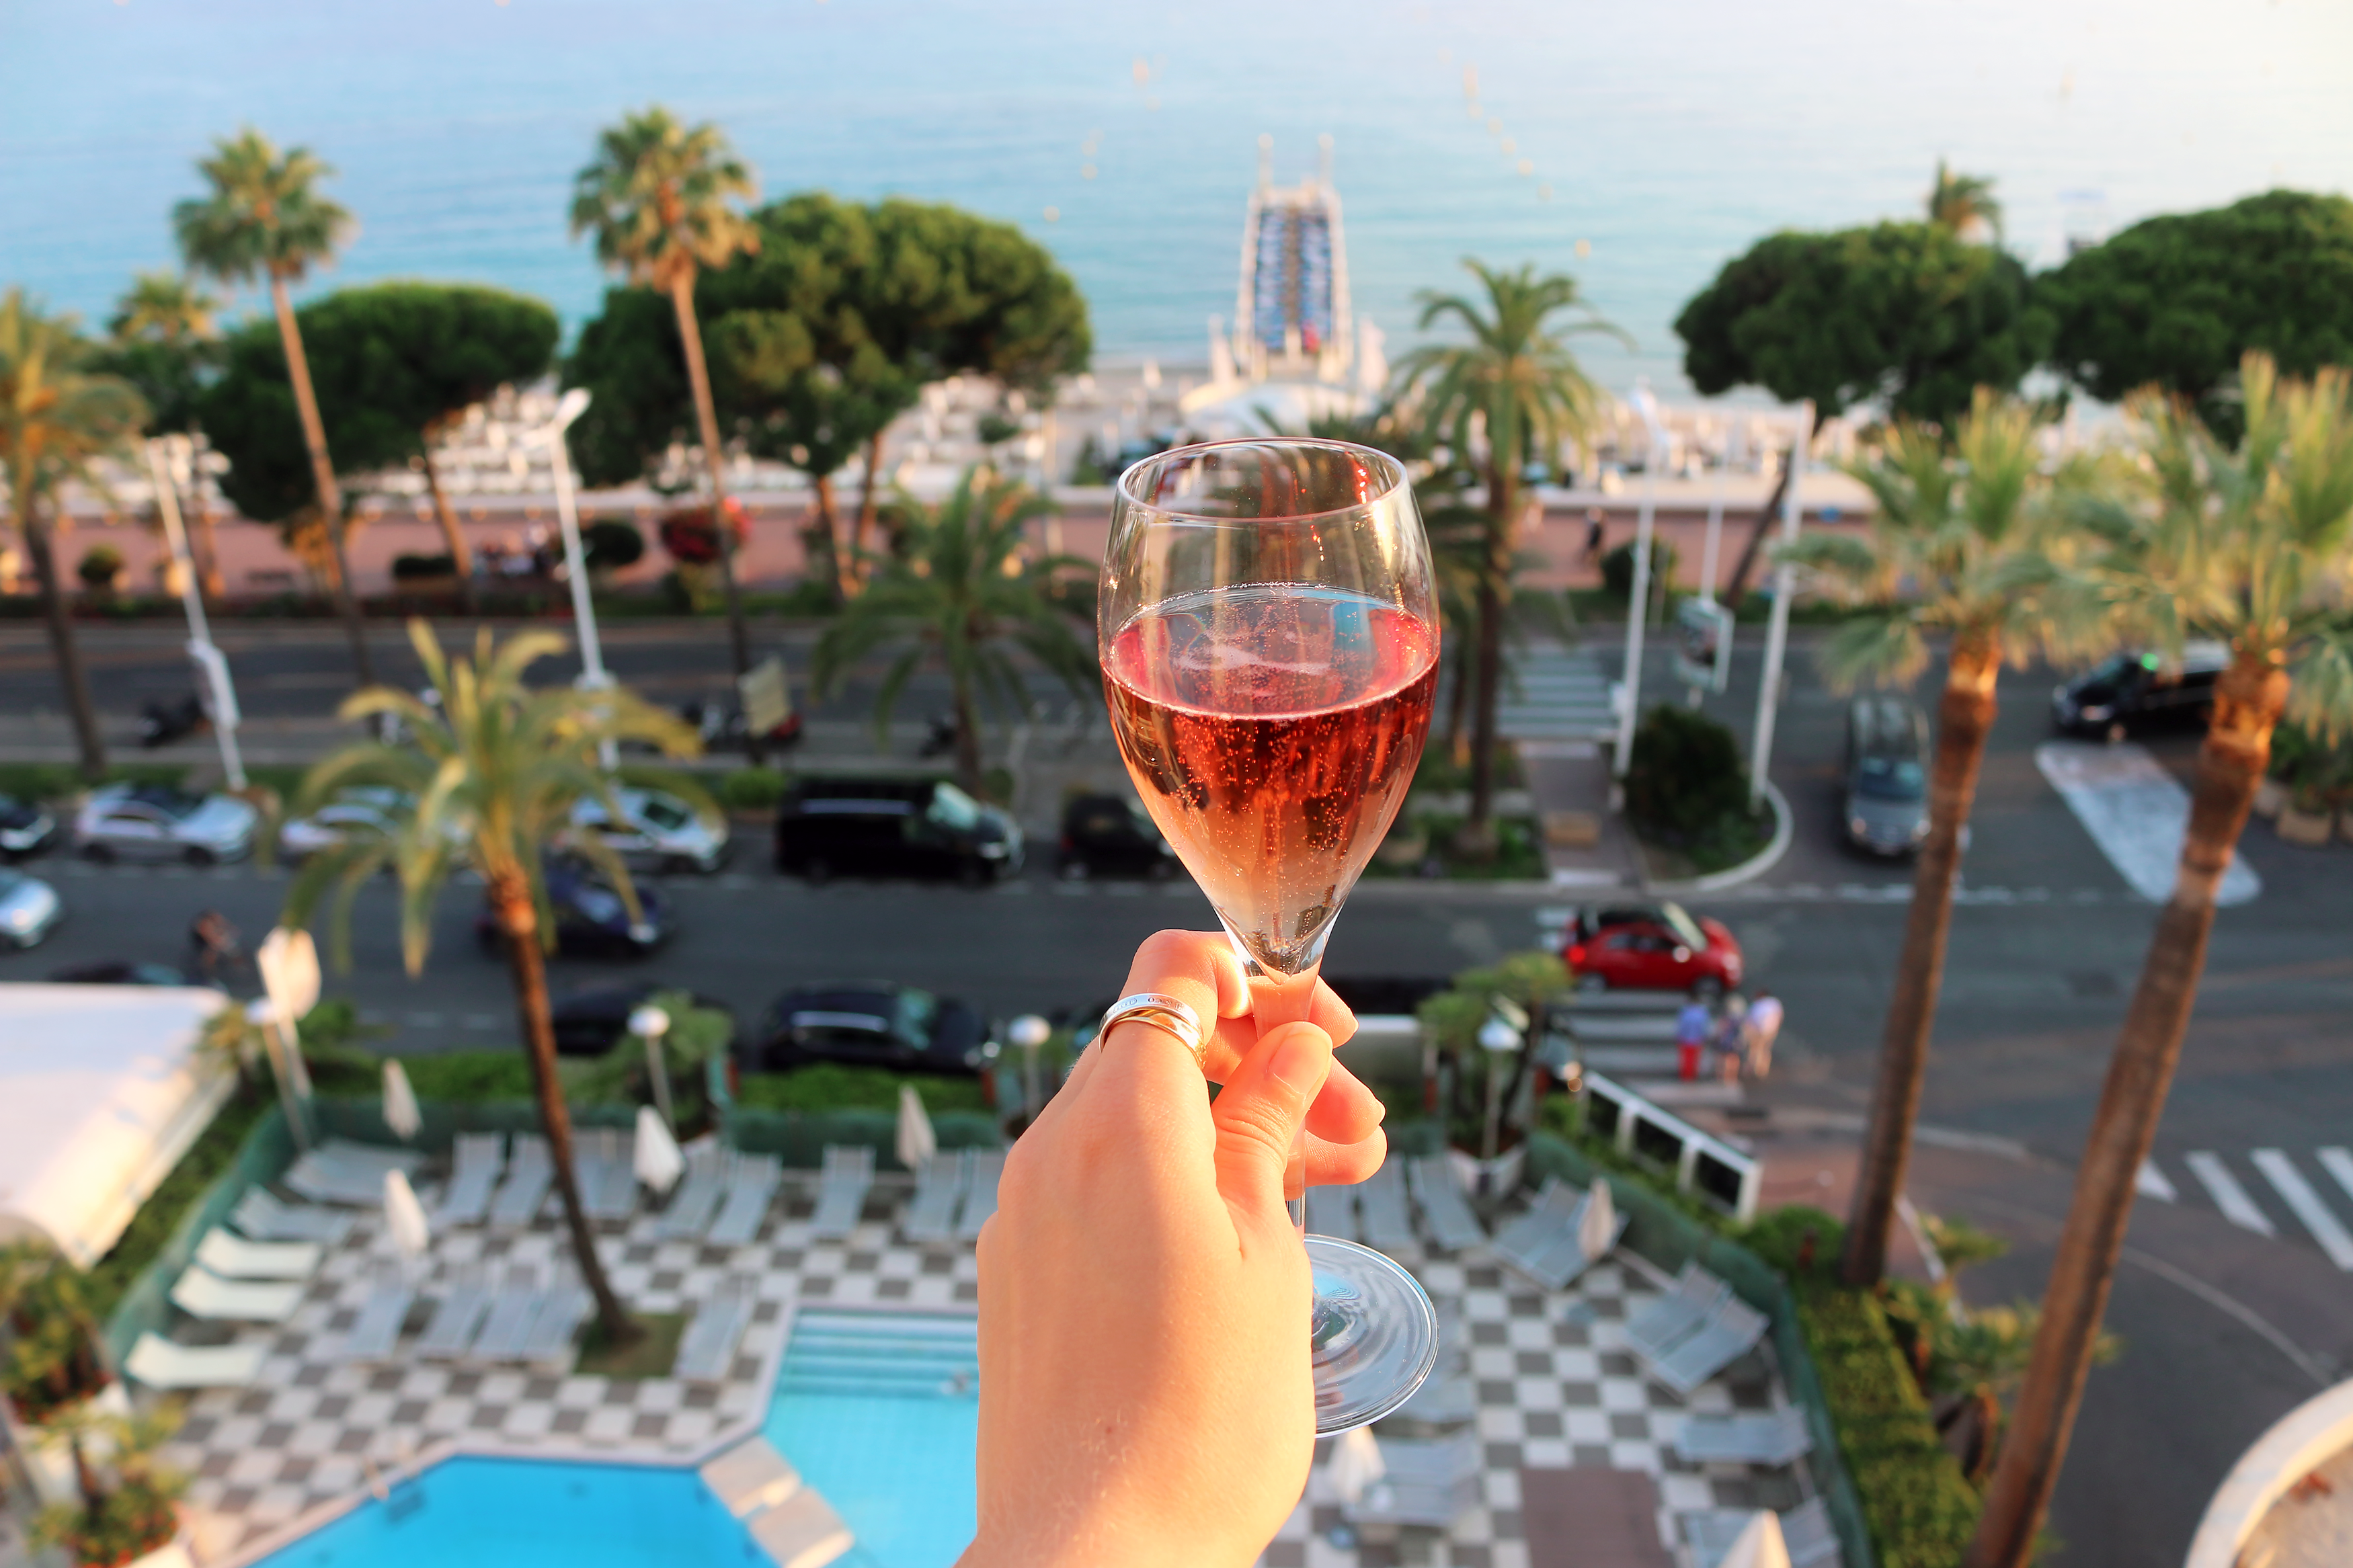 Where to stay in Cannes: Martinez hotel